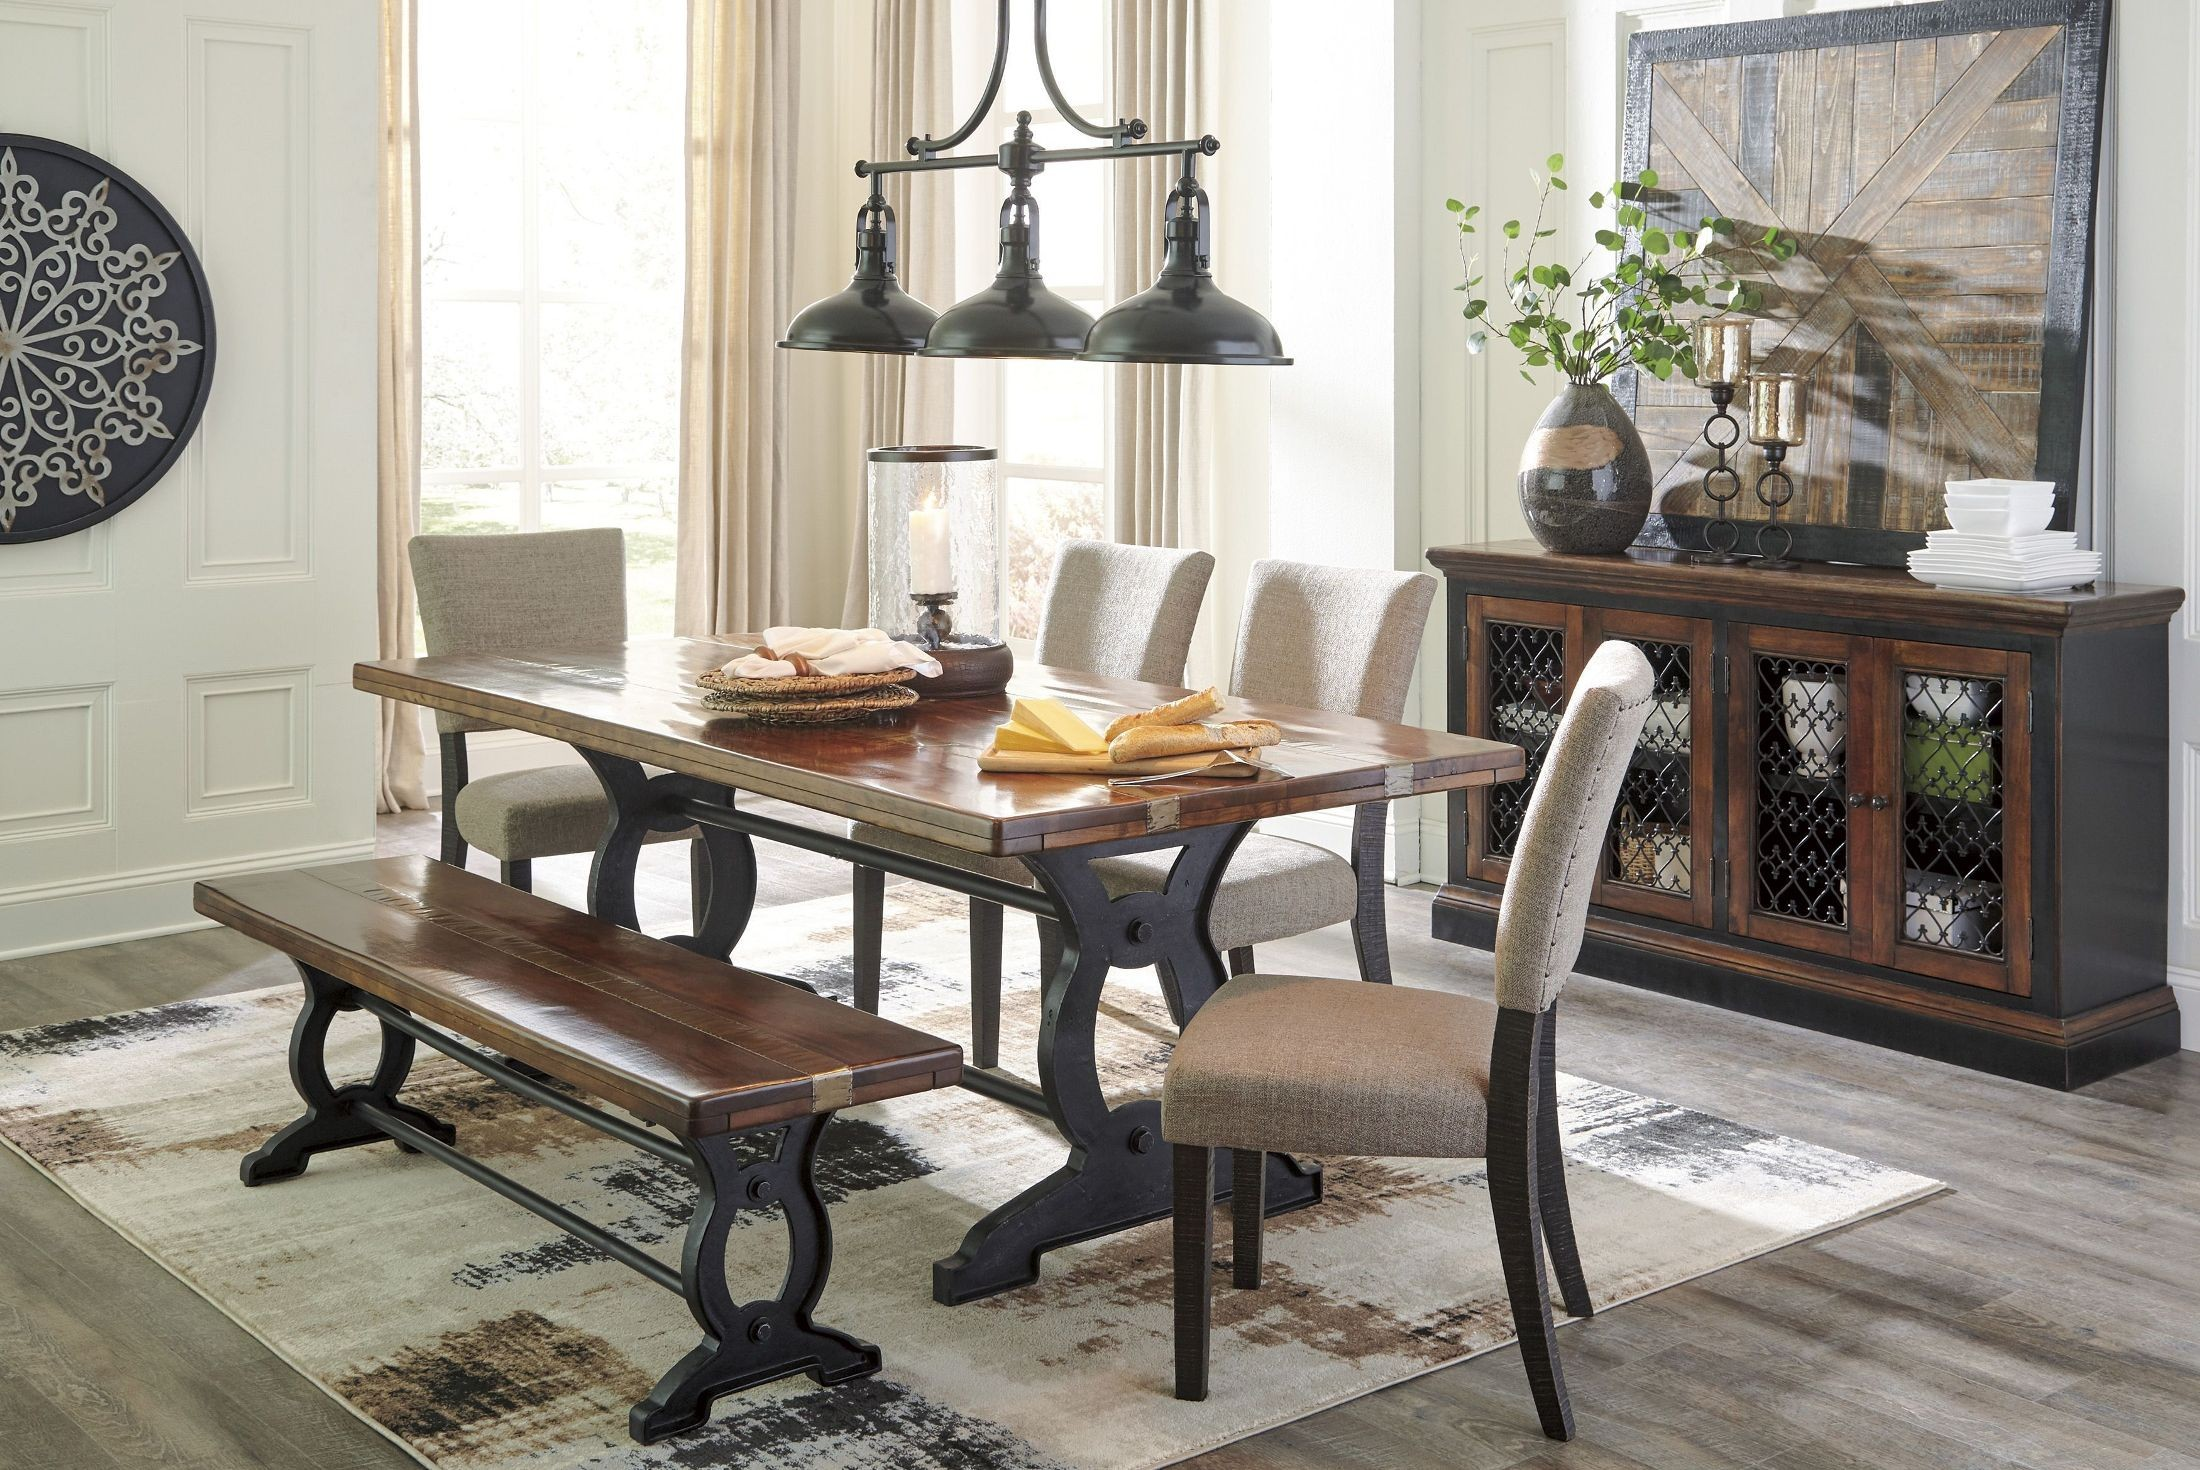 Zurani Brown And Black Rectangular Dining Room Set From